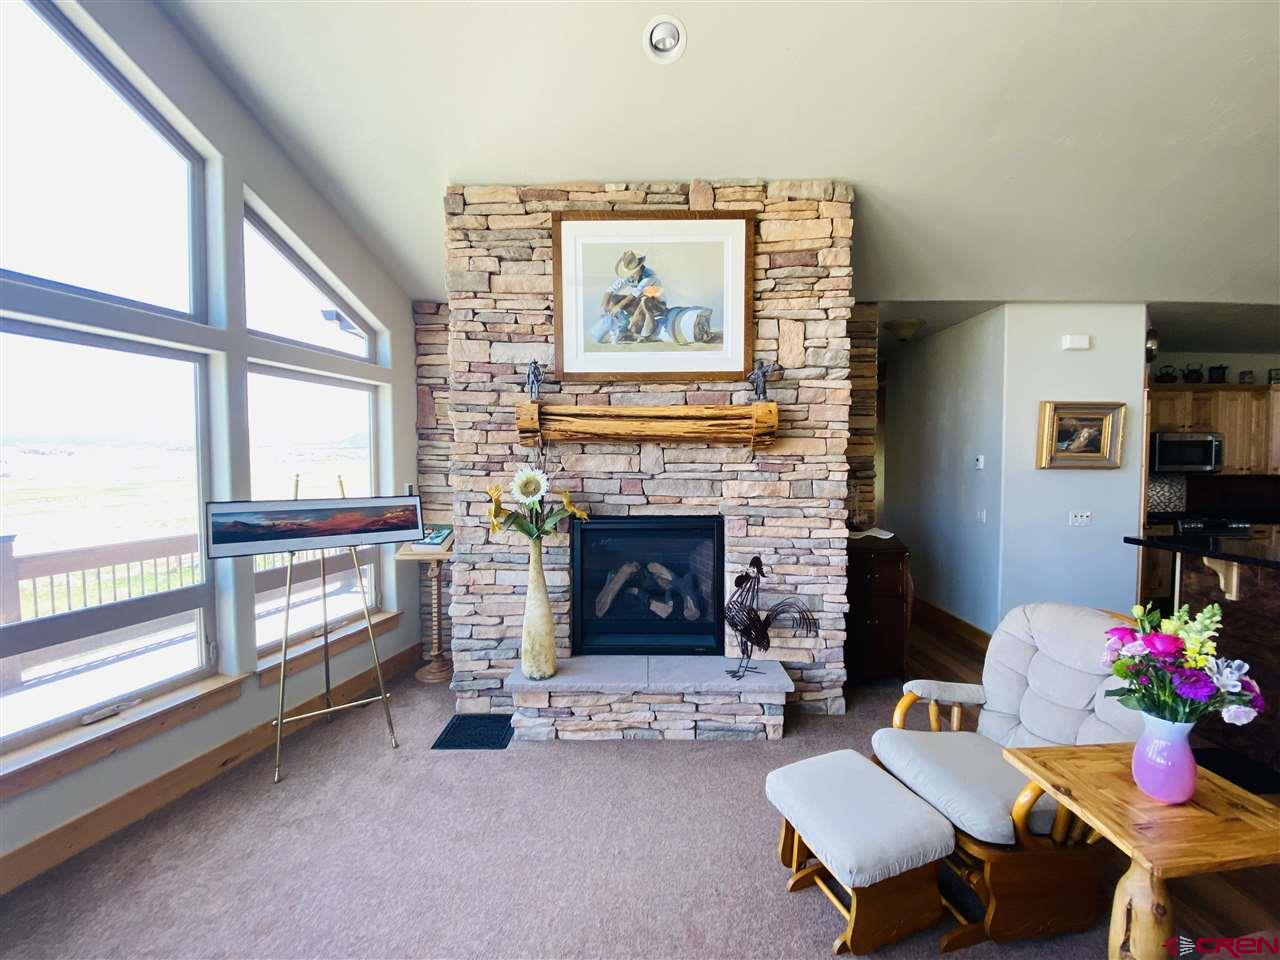 MLS# 769183 - 23 - 79712 Antler Trail, Crawford, CO 81415